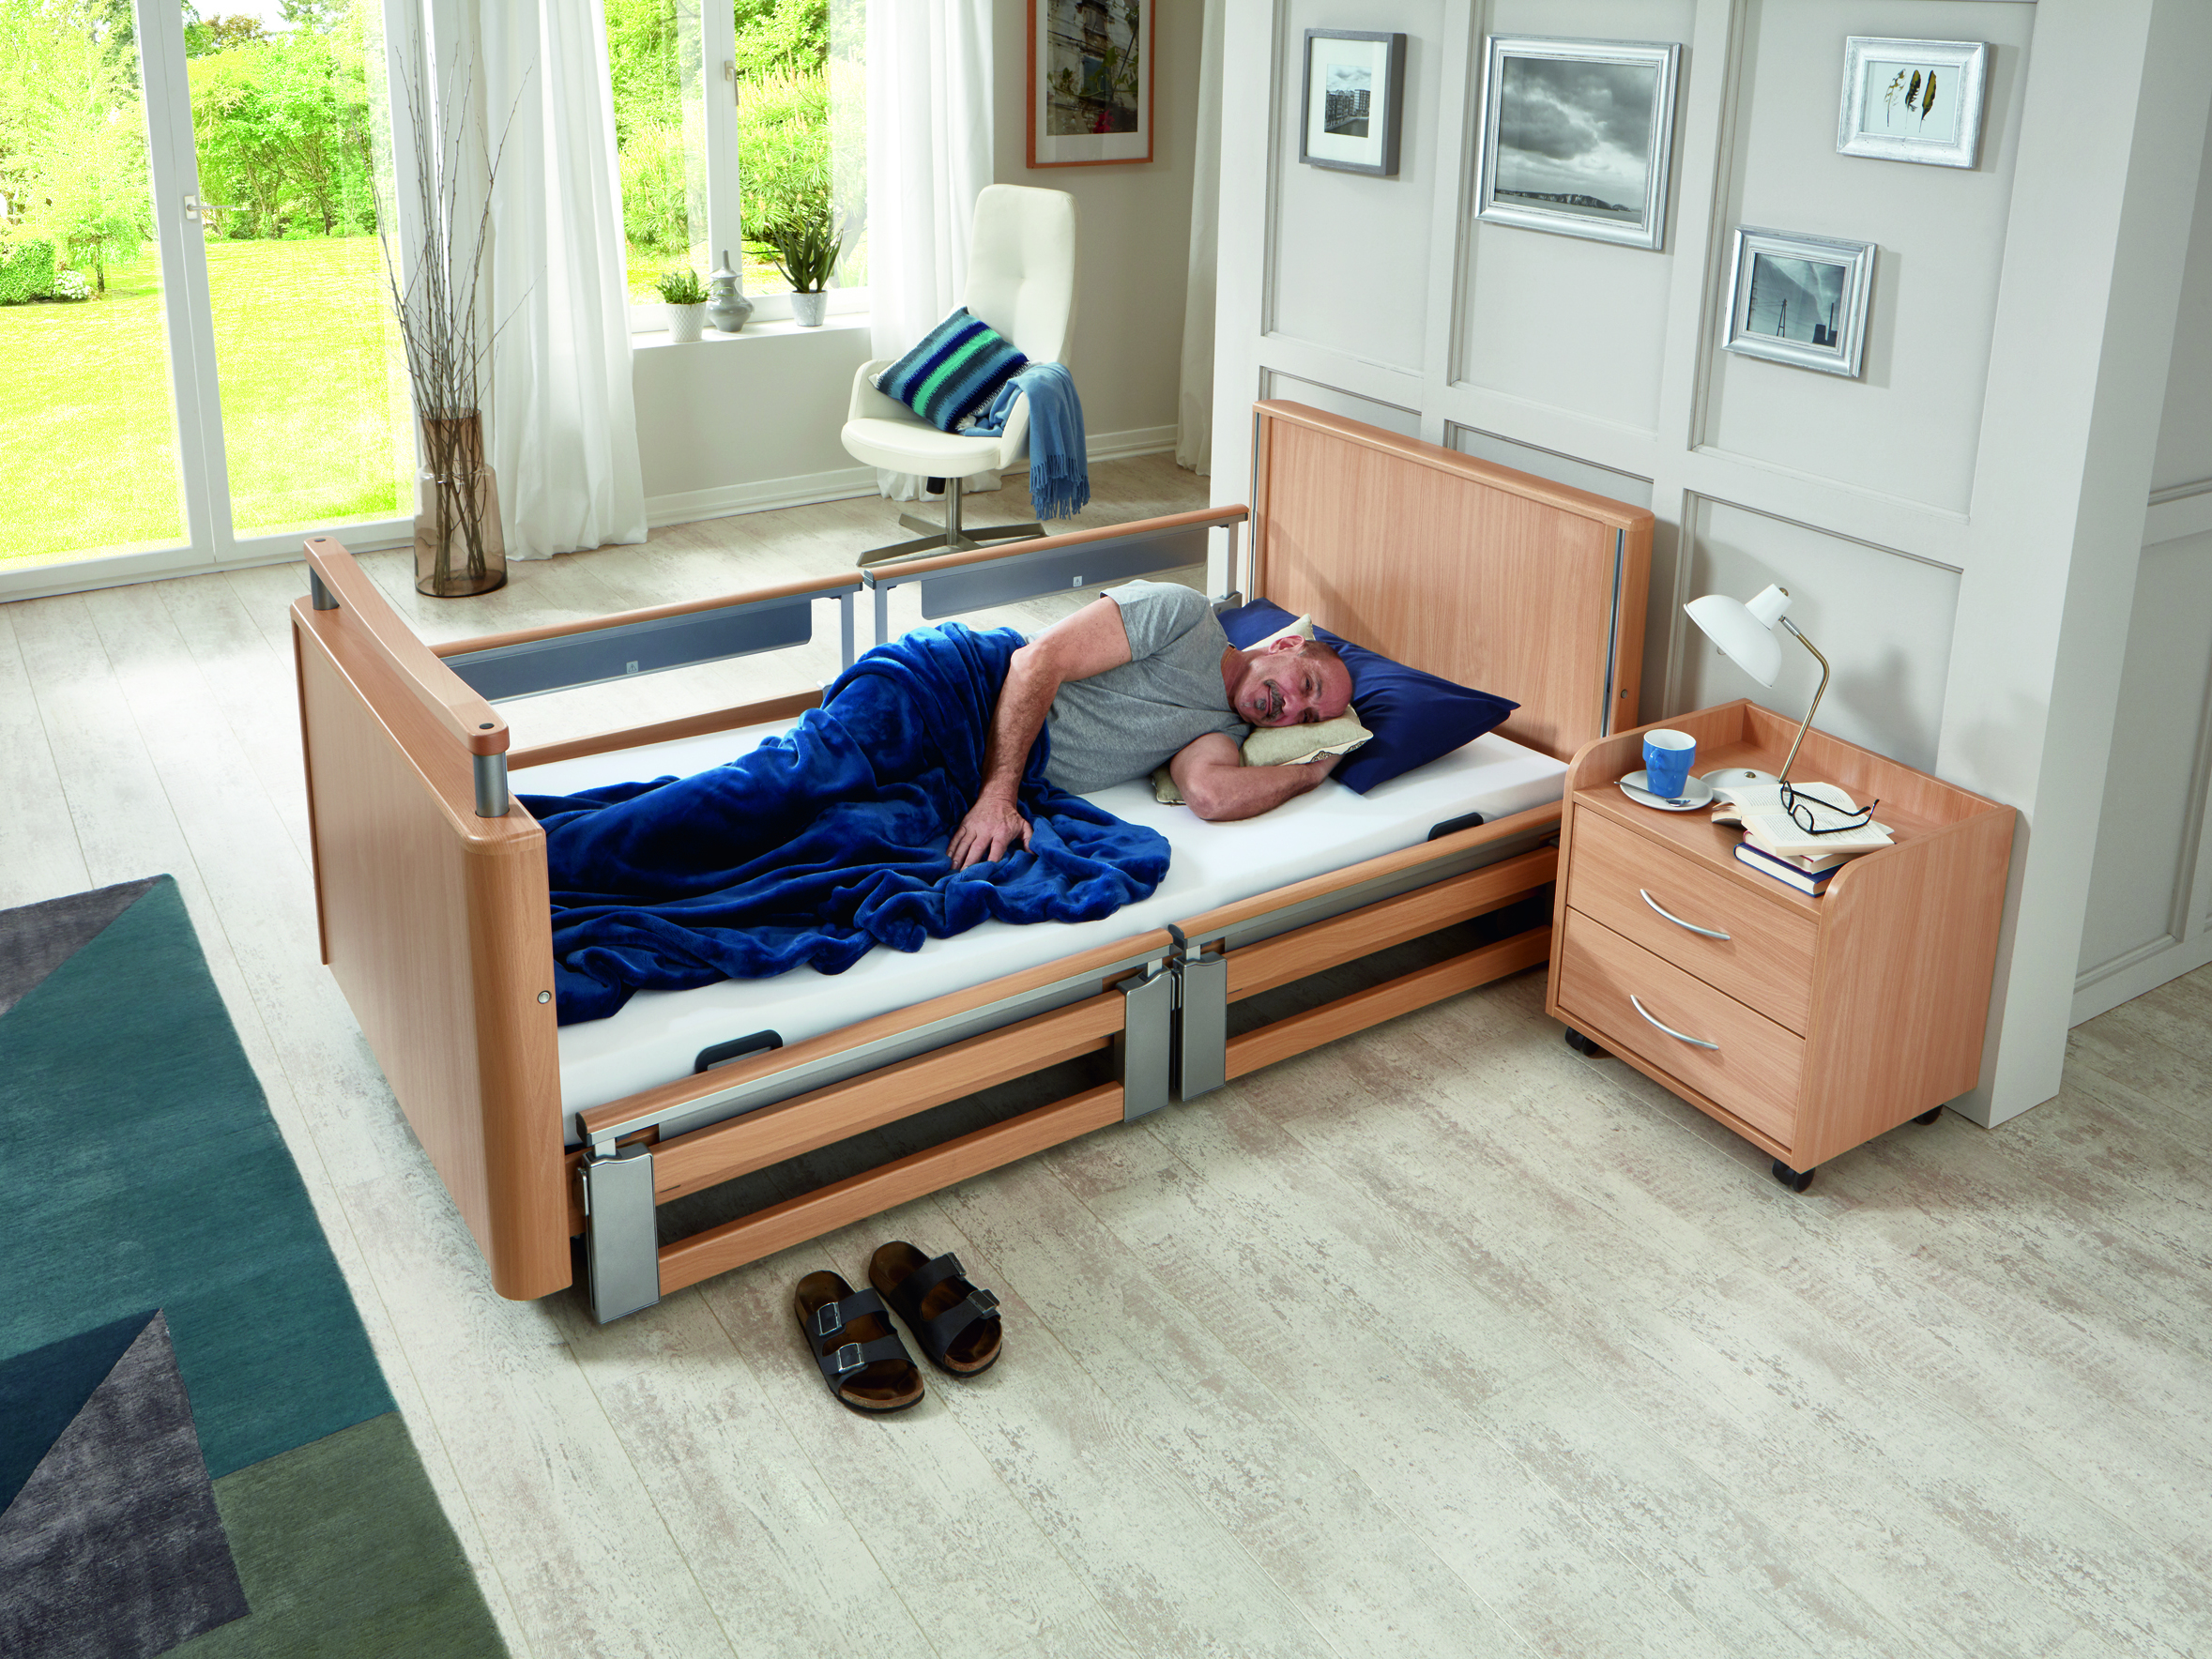 Fall prevention with the Inovia low-height bed